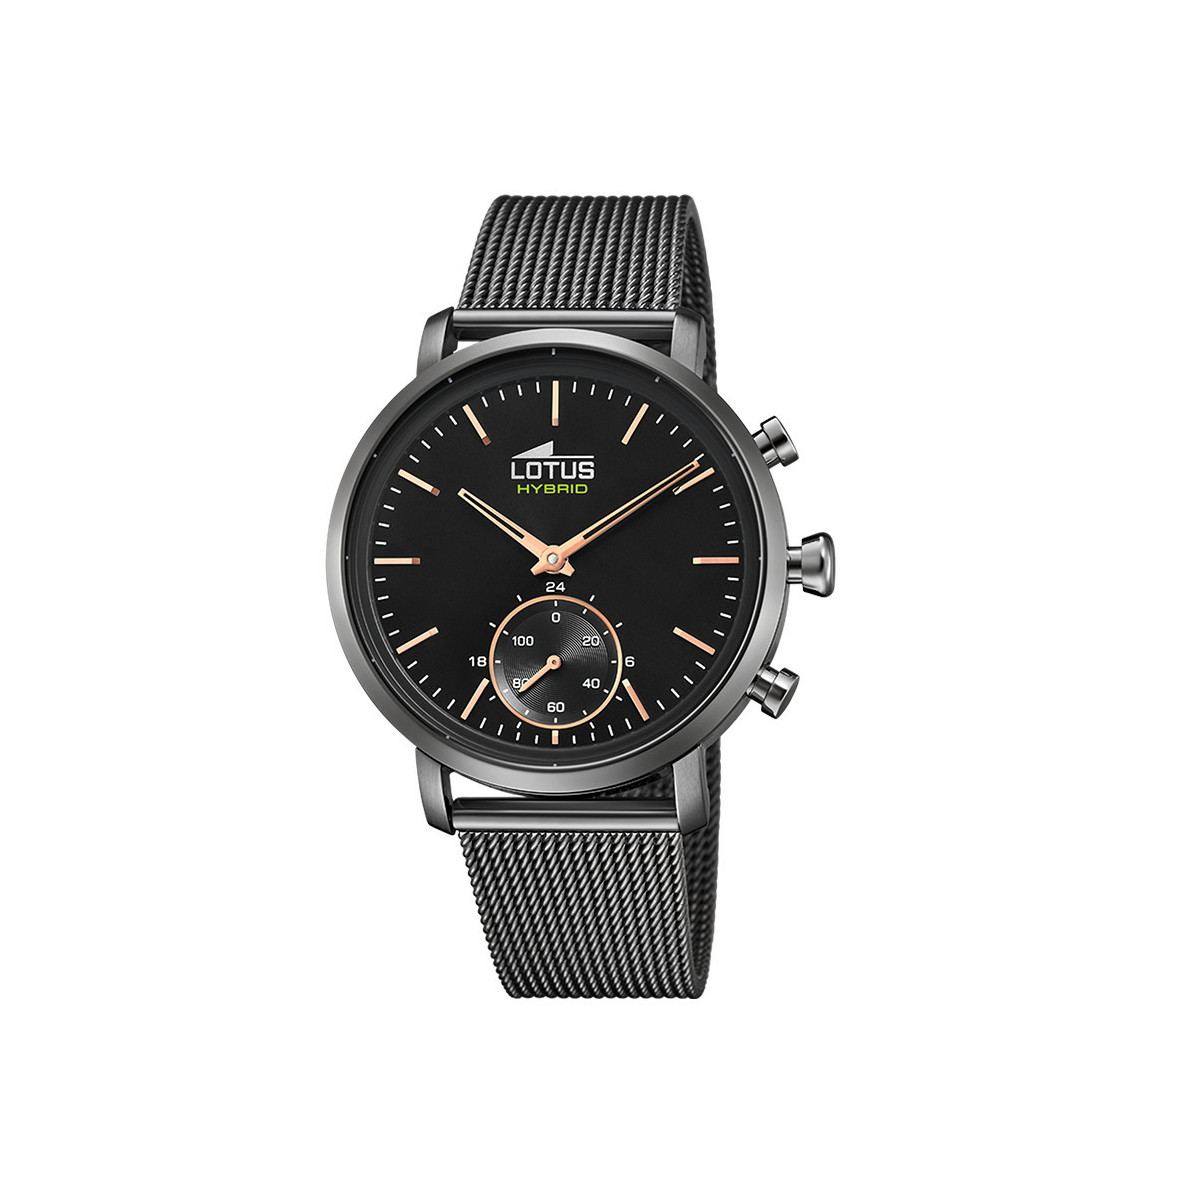 LOTUS HYBRID 42 MM CASE GRAY